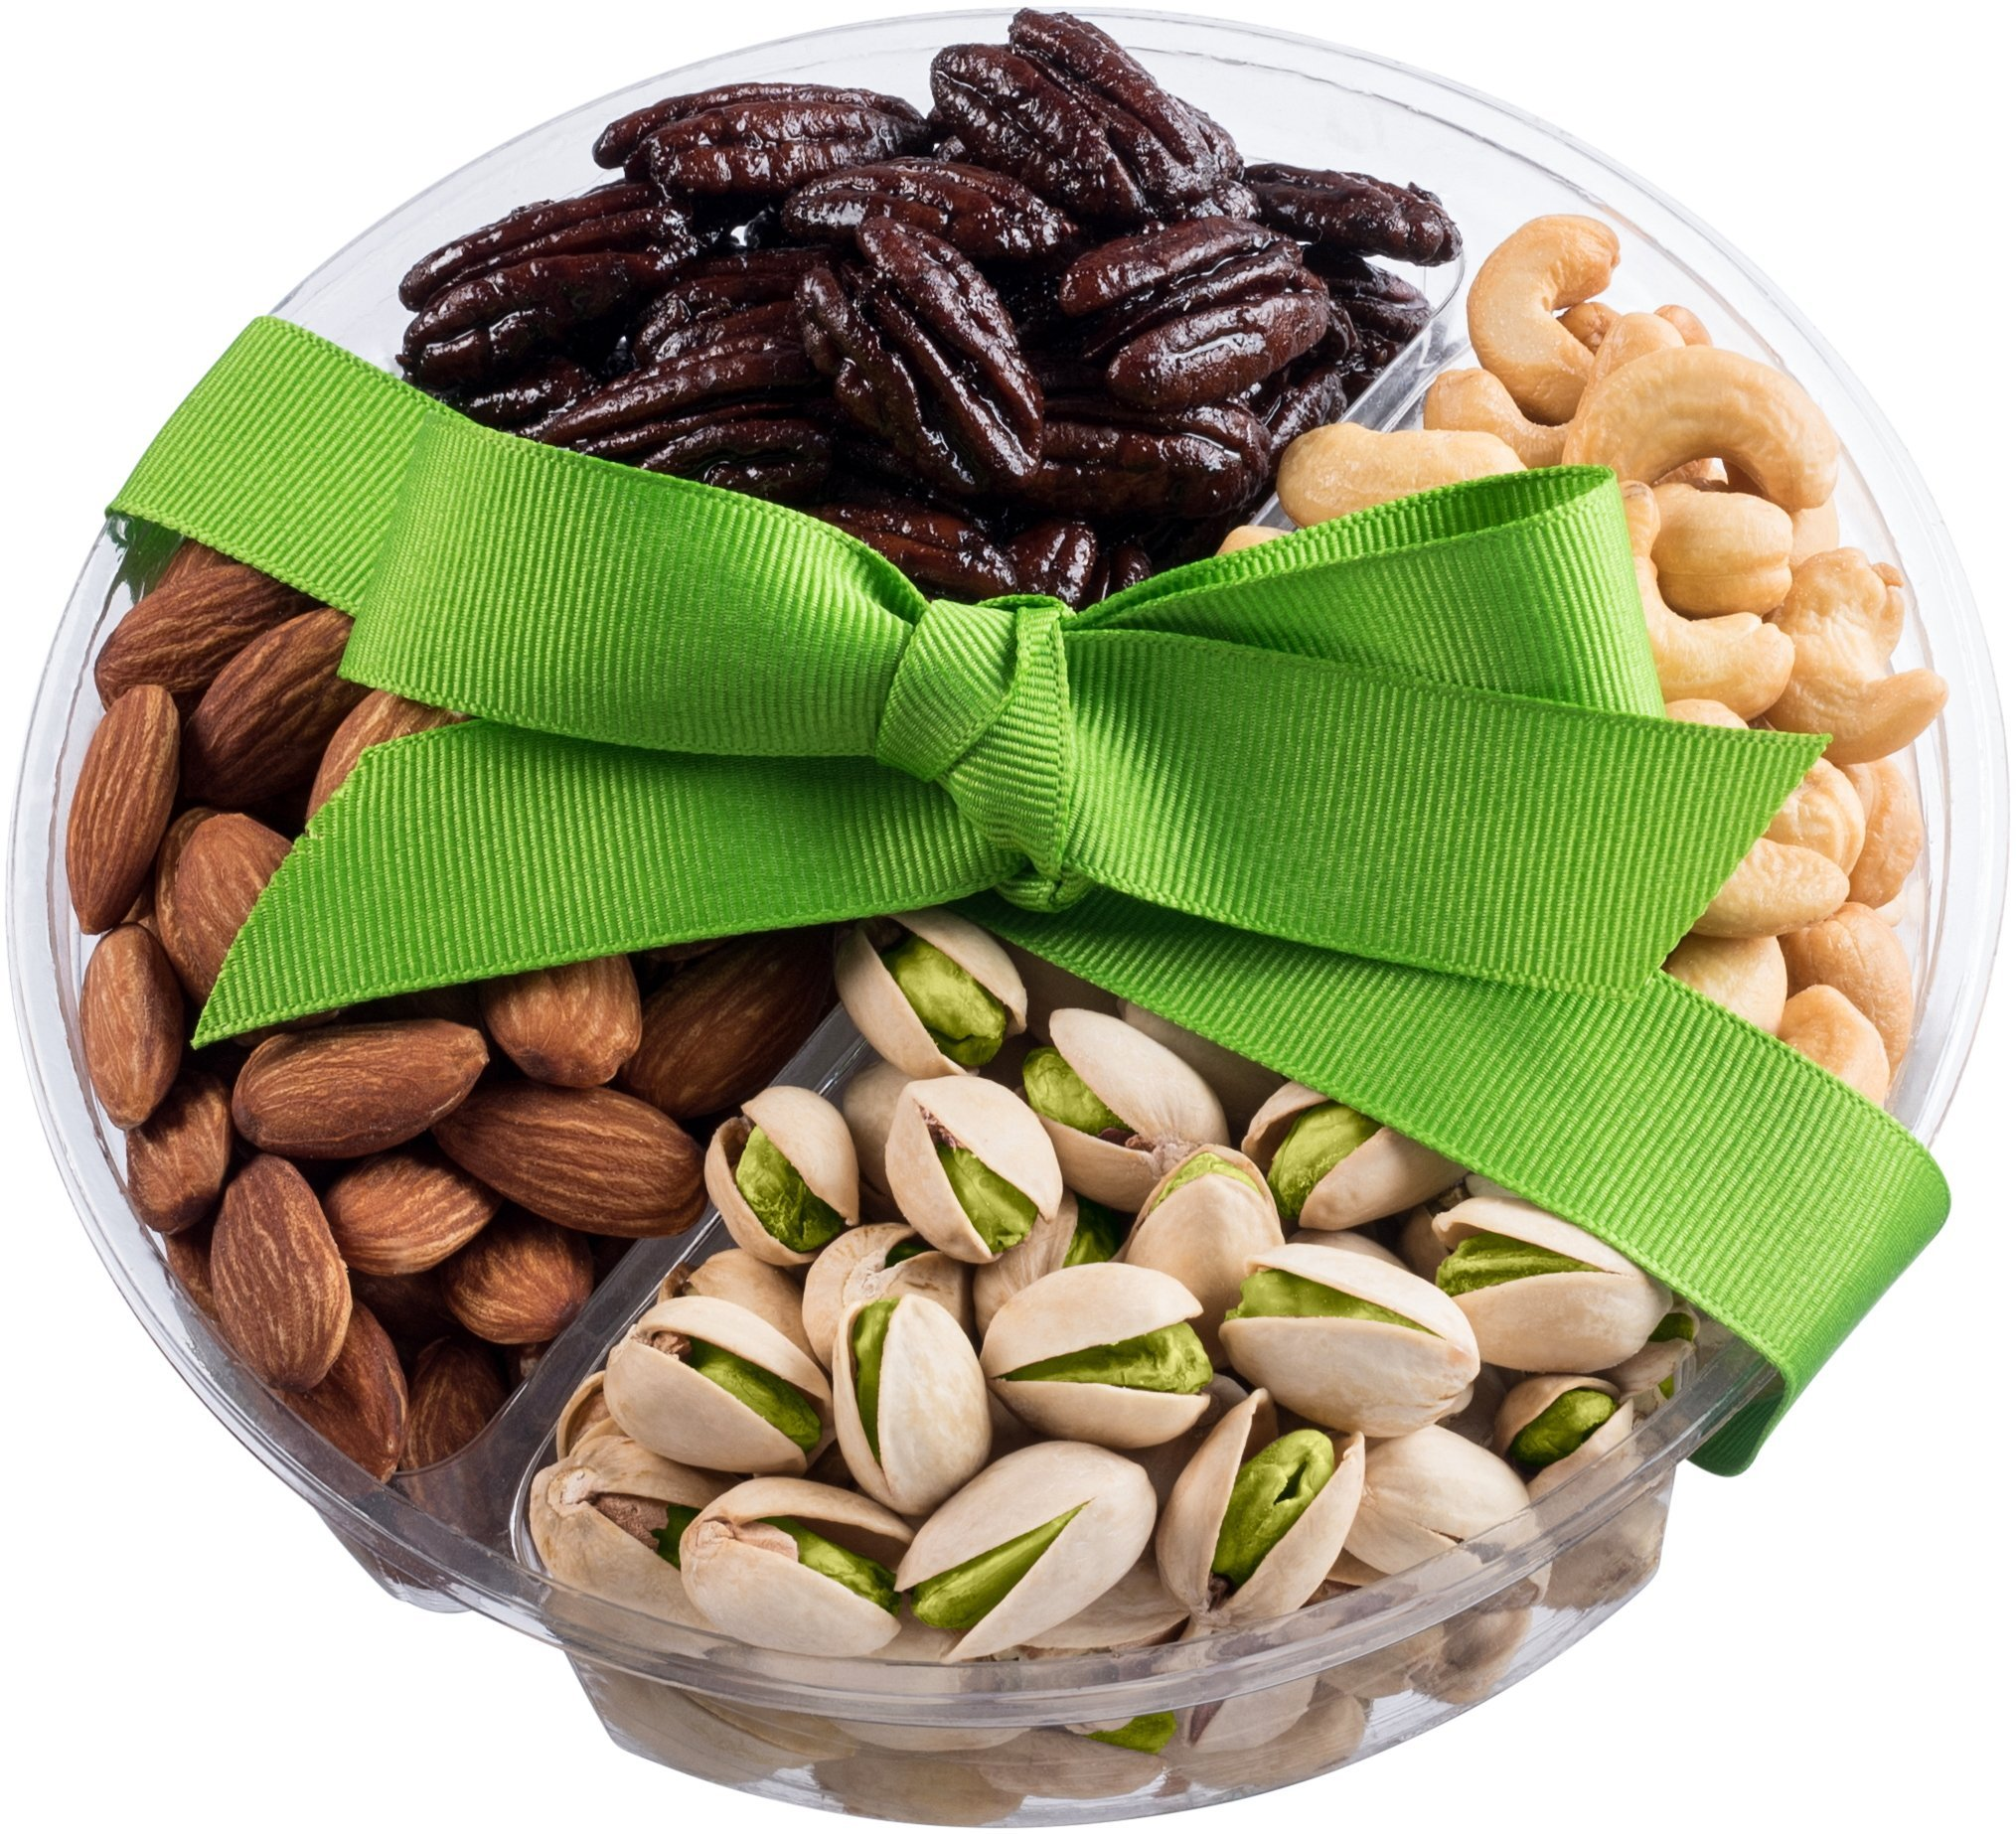 Mother's Day Nuts Gift Basket | Medium 4-Sectional Delicious Variety Mixed Nuts Prime Gift | Healthy Fresh Gift Idea For Christmas, Thanksgiving, Mothers & Fathers Day, And Birthday